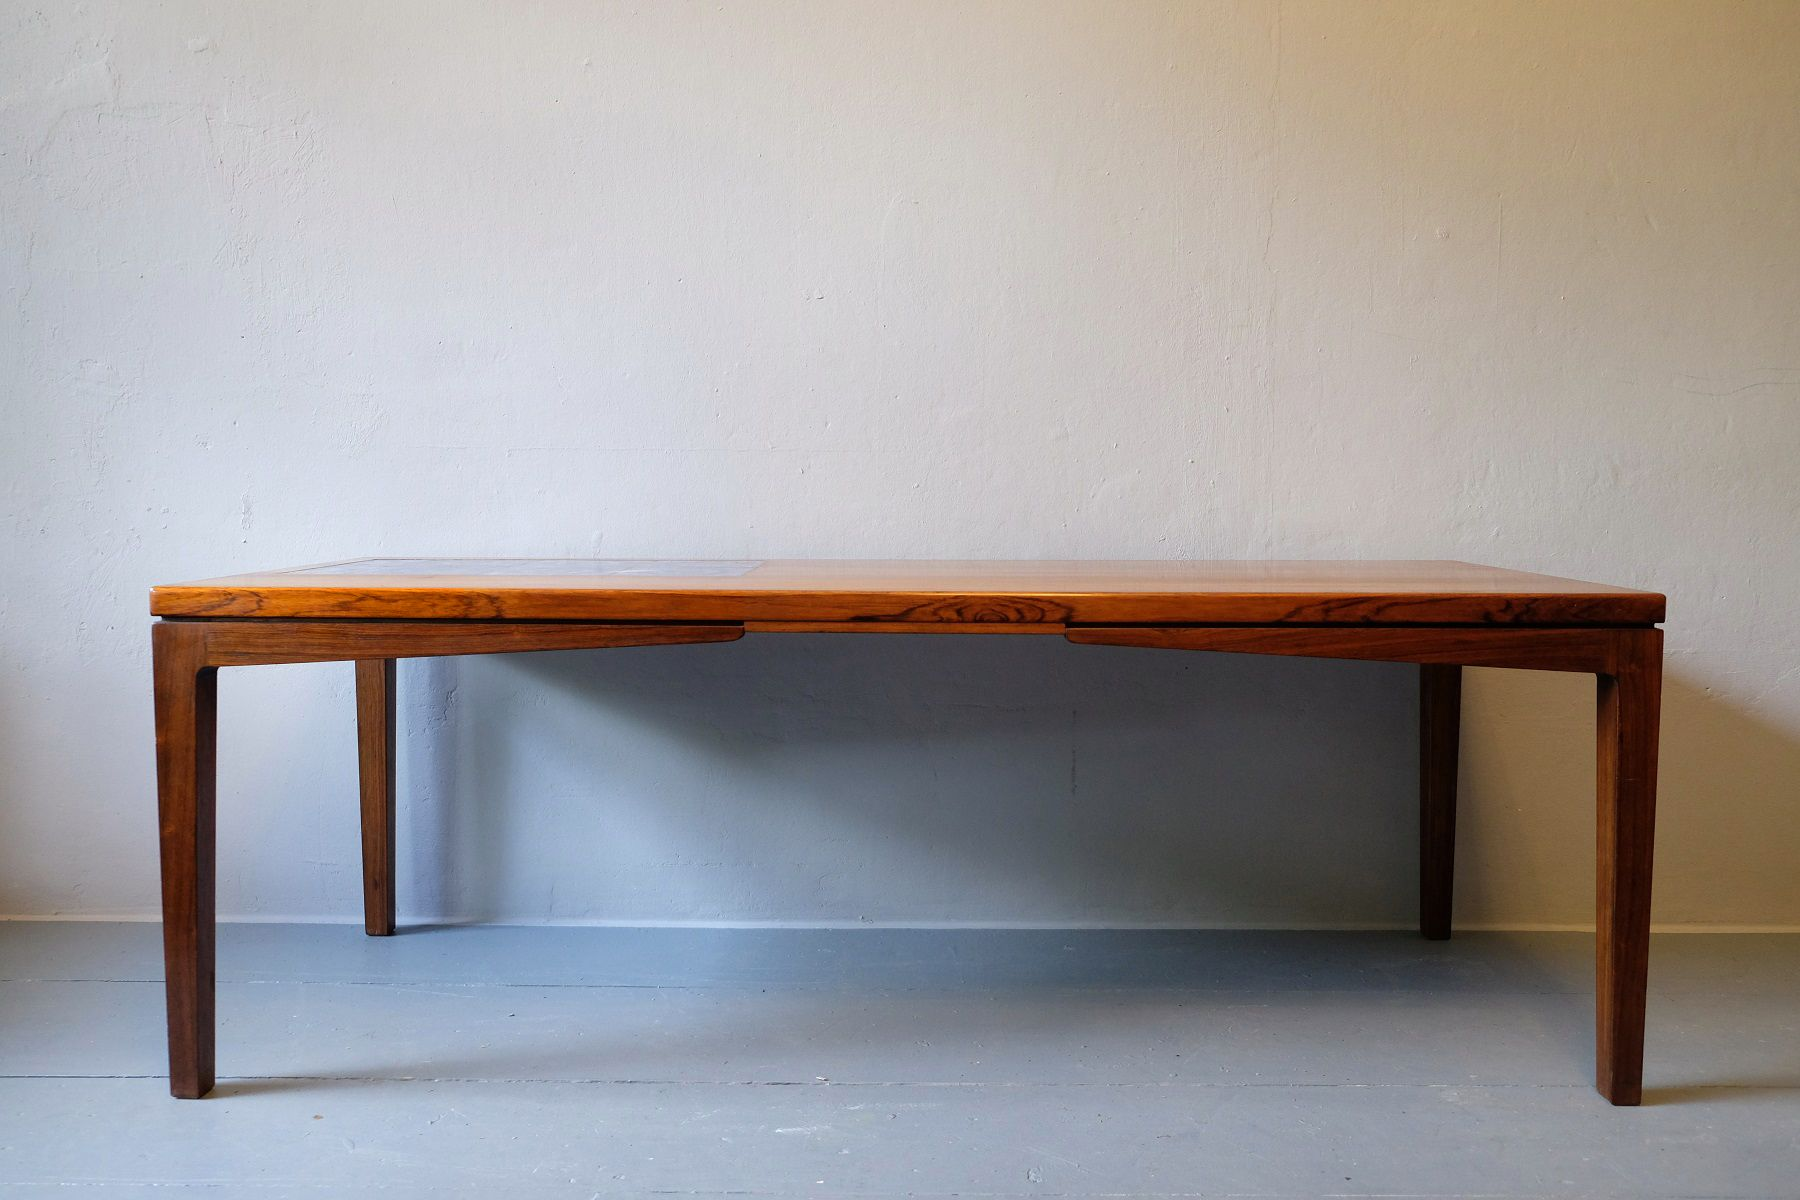 Danish Rosewood Coffee Table with Mosaic Ceramic Tiles 1960s for